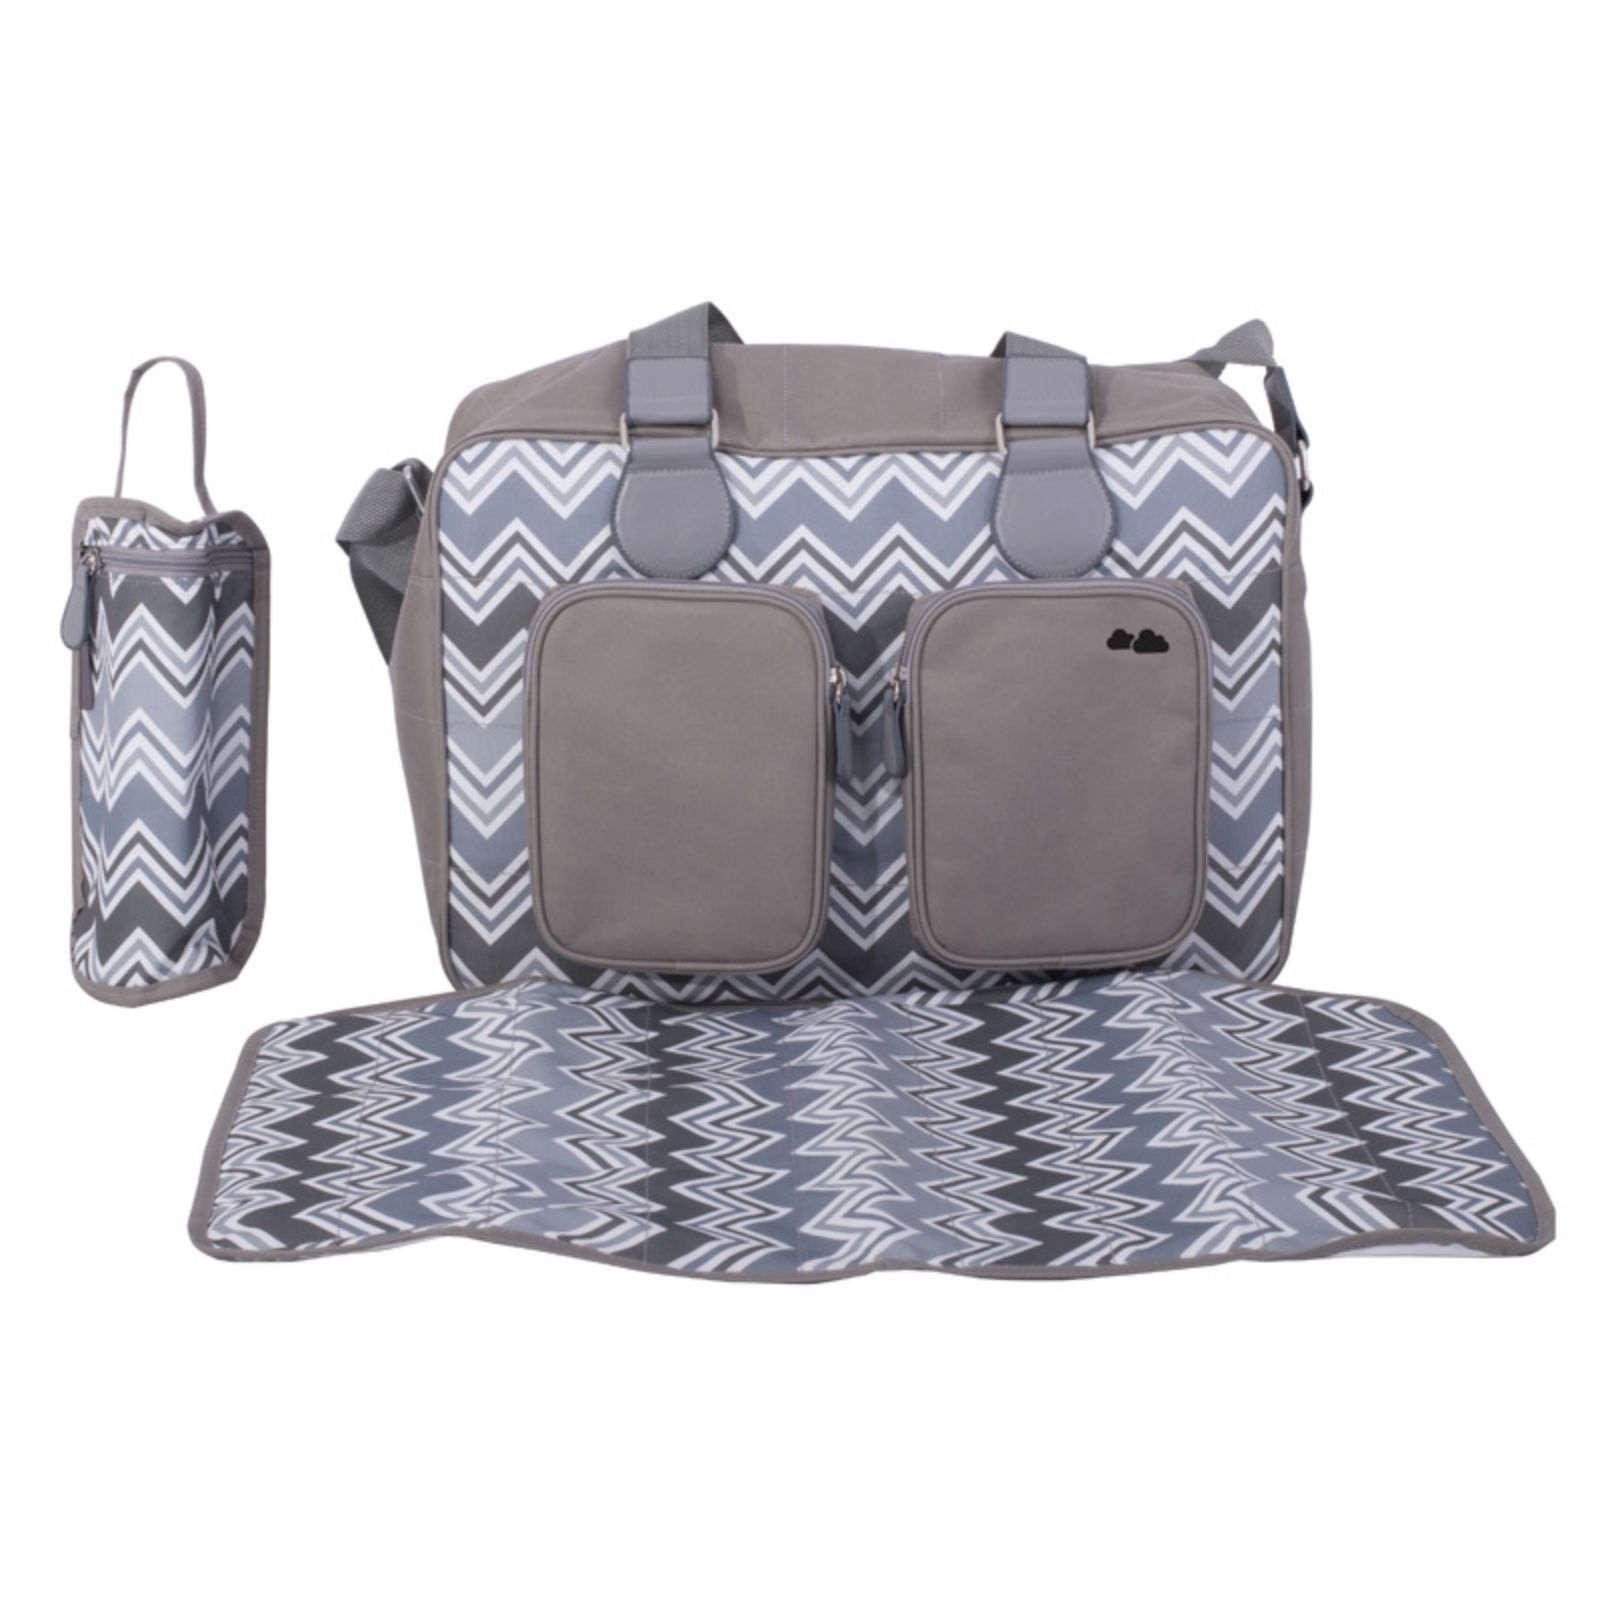 ea0c72350b0d6 My Babiie Deluxe Changing Bag *Samantha Faiers Collection* - Charcoal  Chevron | Buy at Online4baby